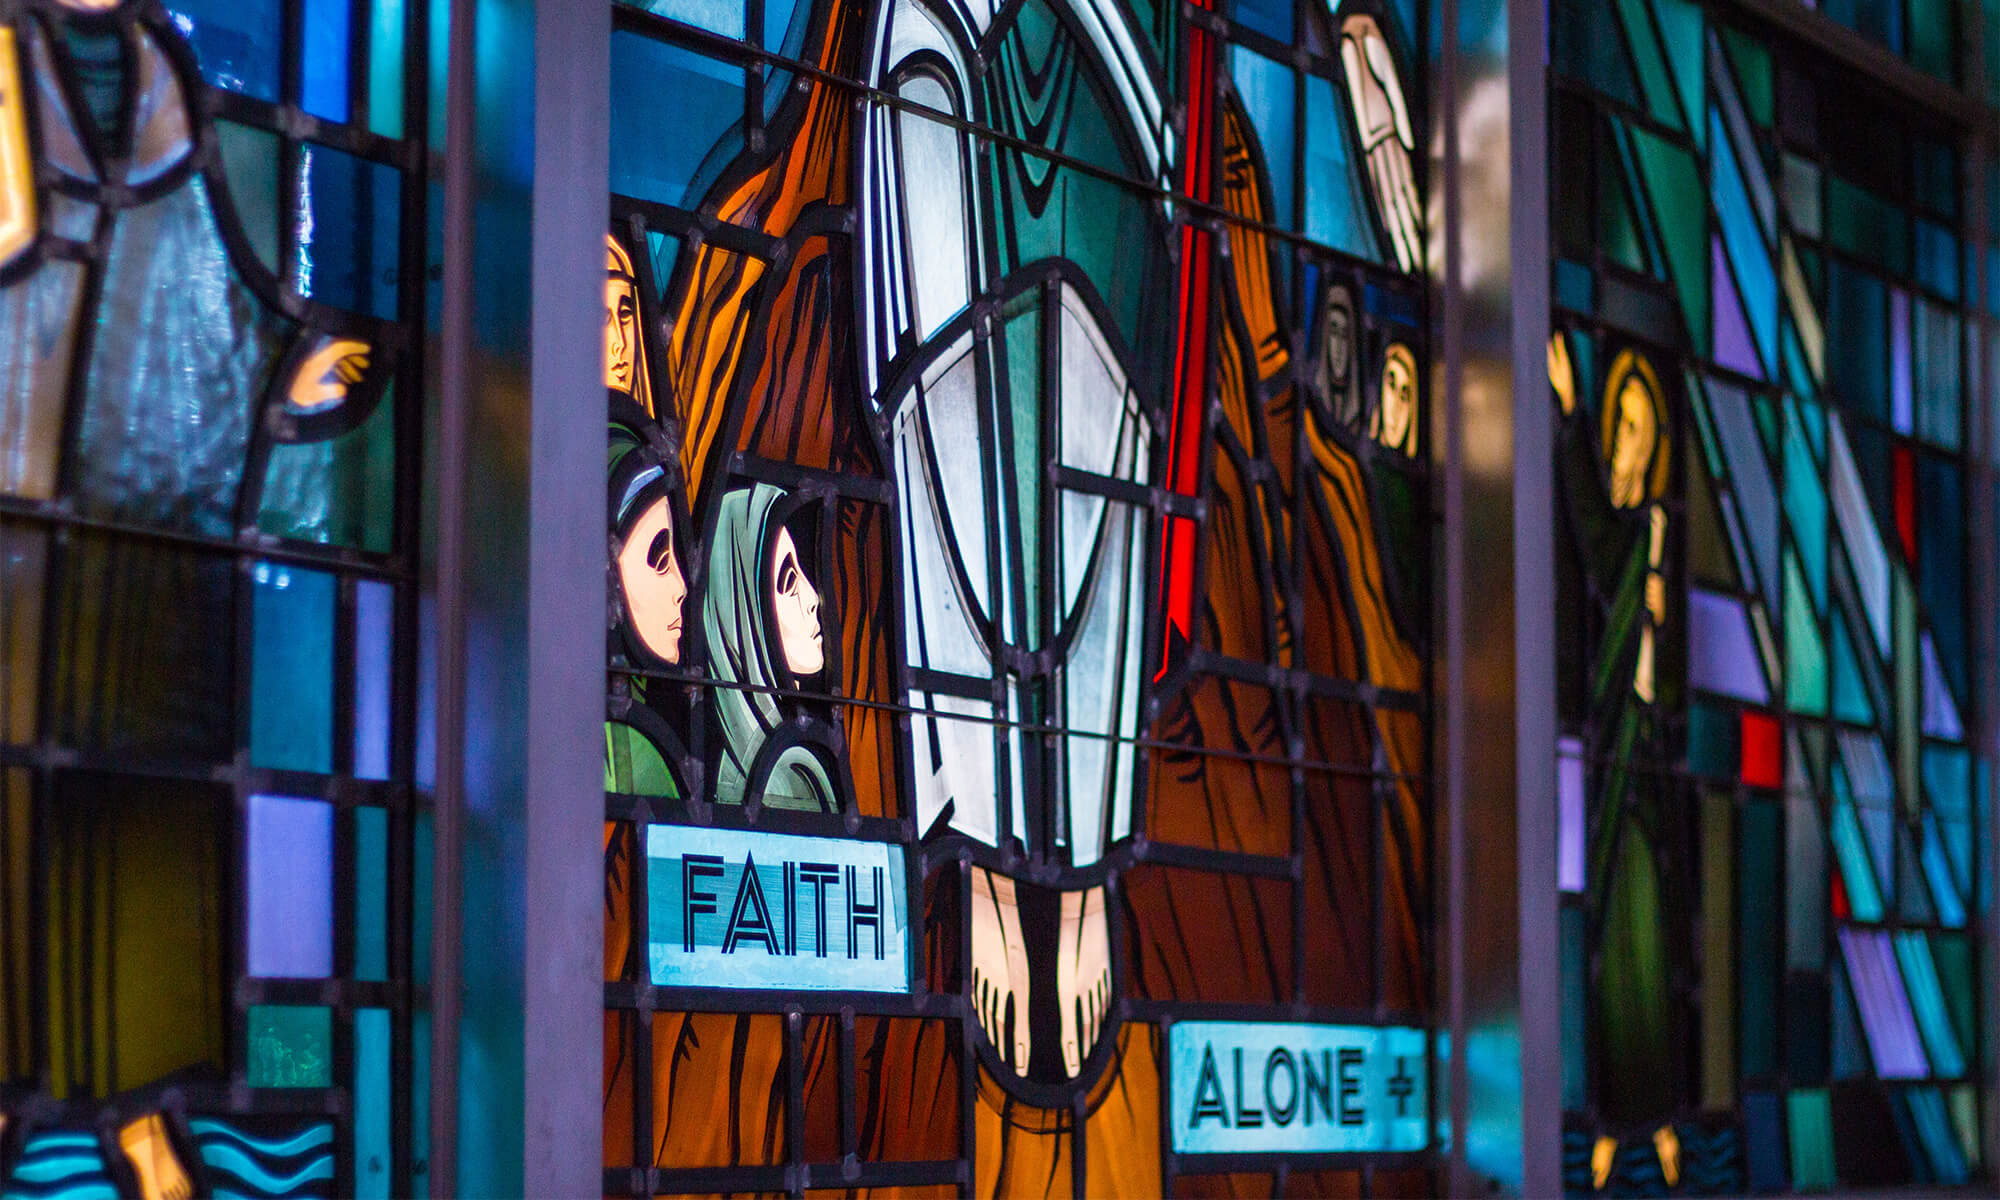 The Chapel of Christ Triumphant houses stained glass windows donated by the Wangerin family.